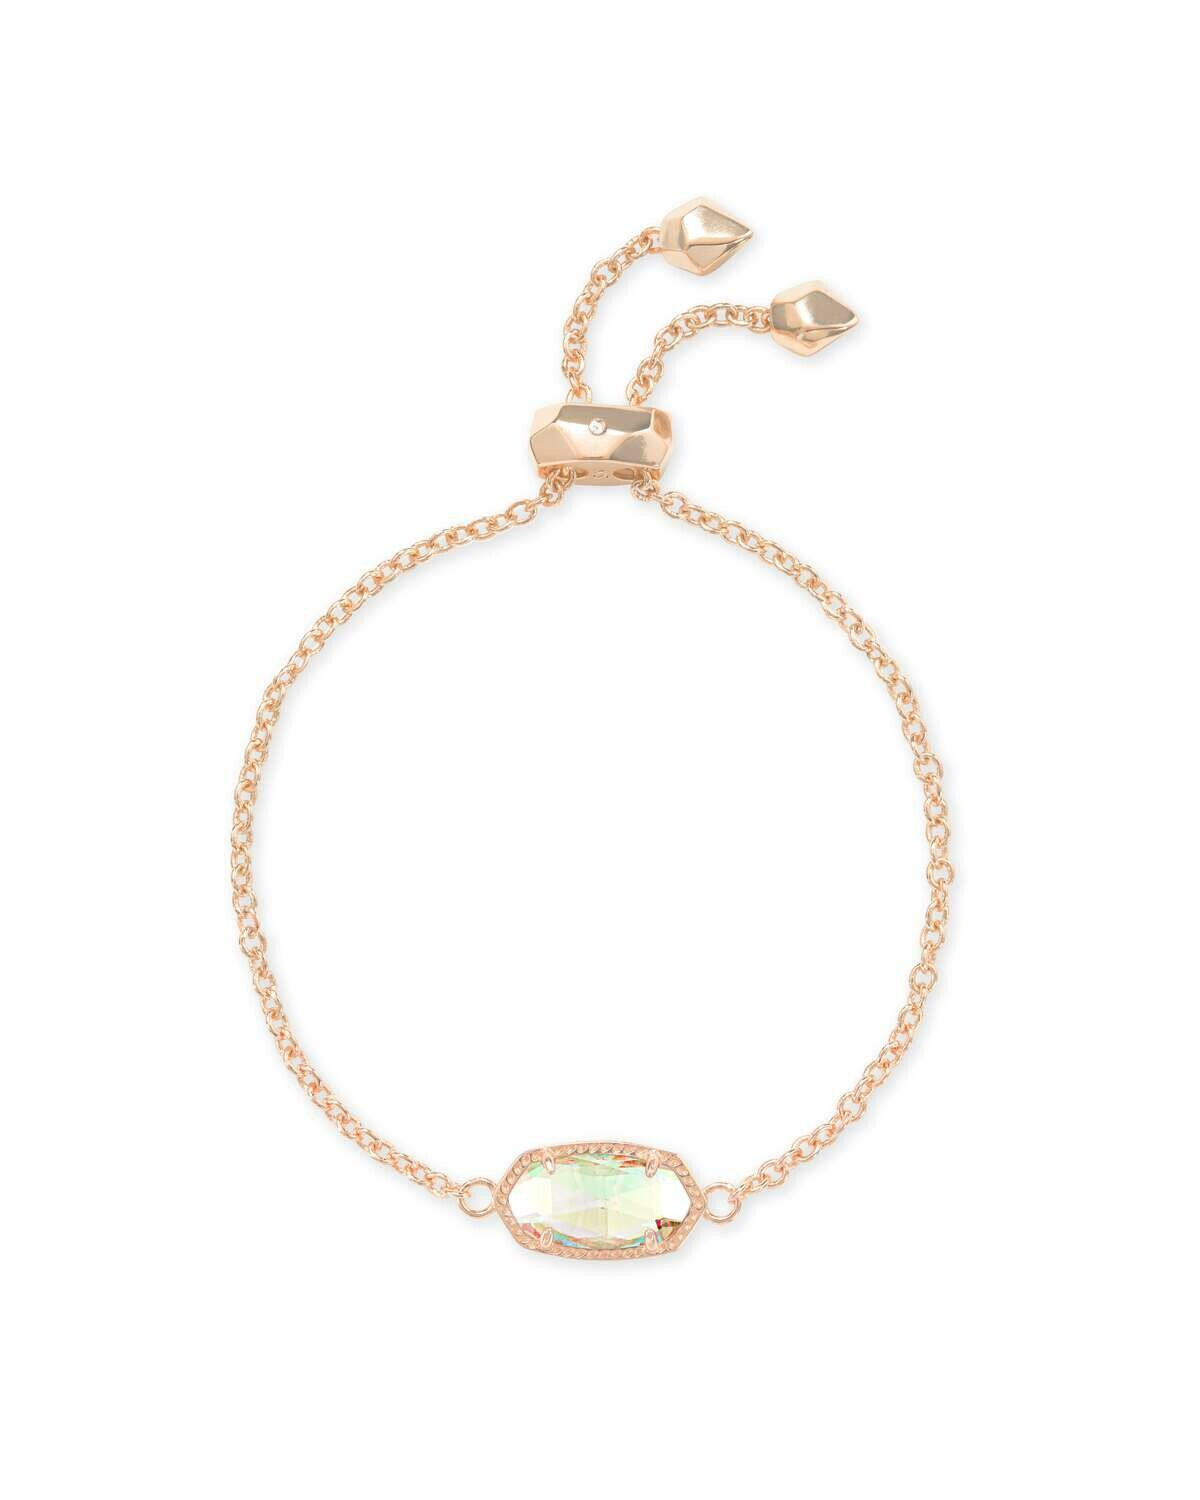 Kendra Scott Elaina Rose Gold Adjustable Chain Bracelet In Dichroic Glass